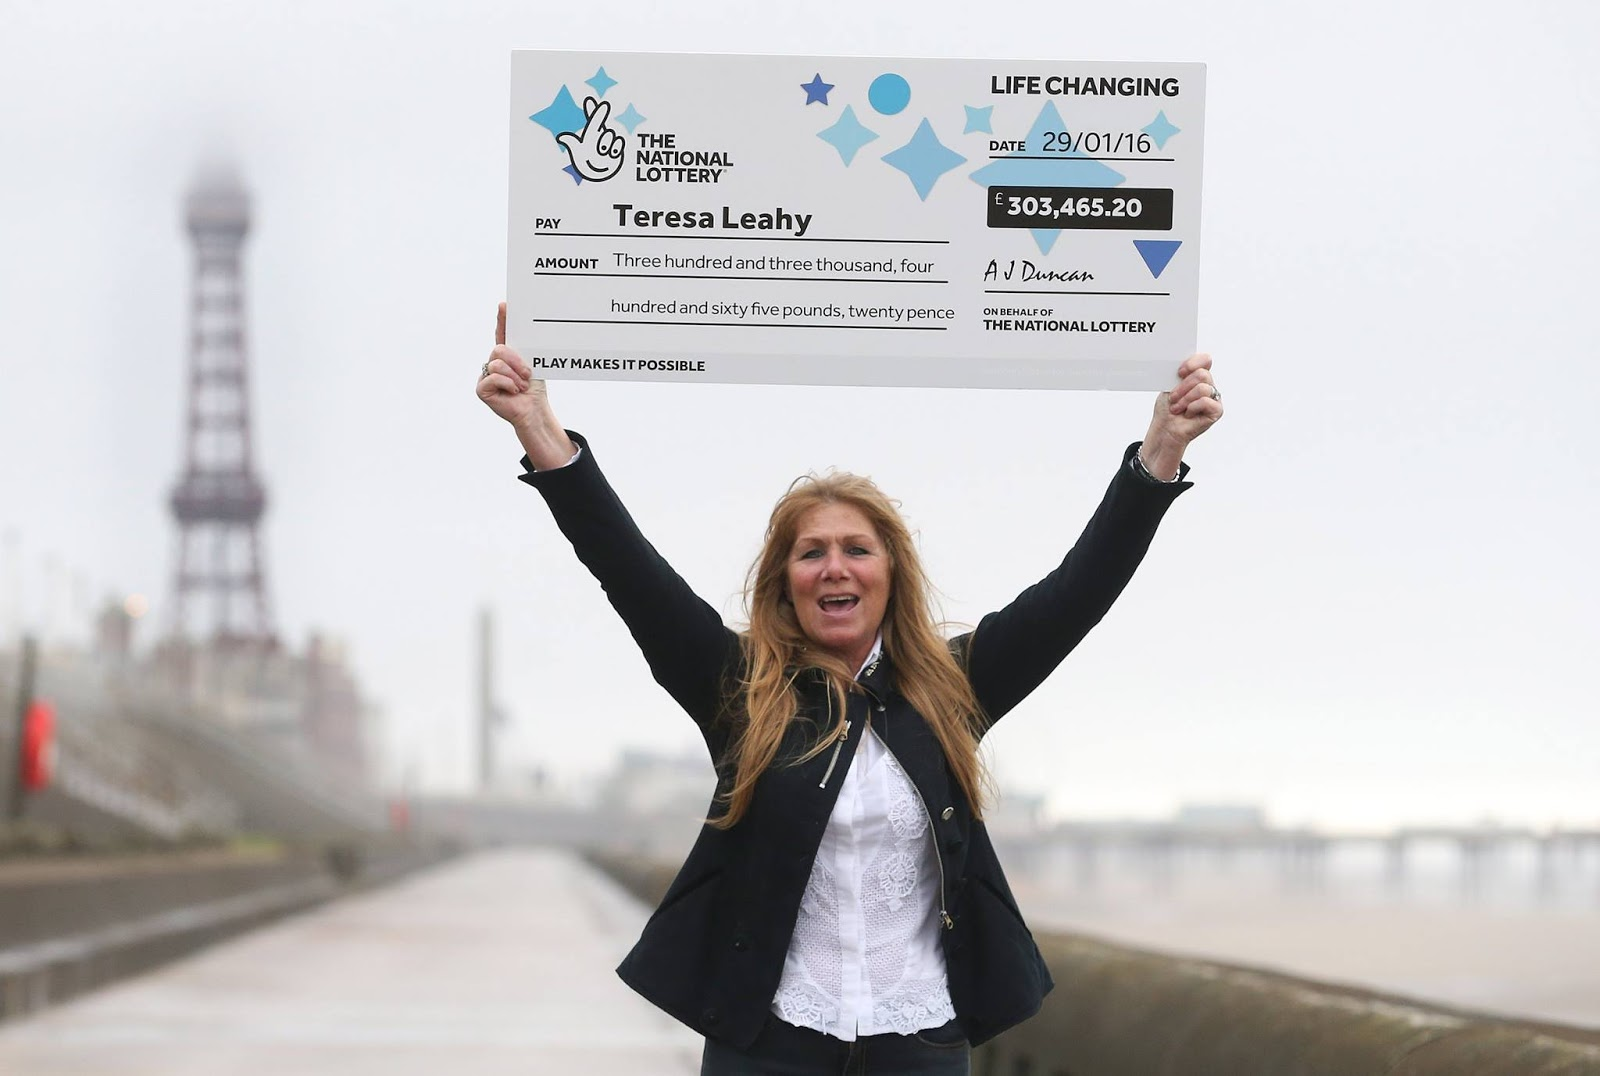 Teresa Leahy from Blackpool has won EuroMillions